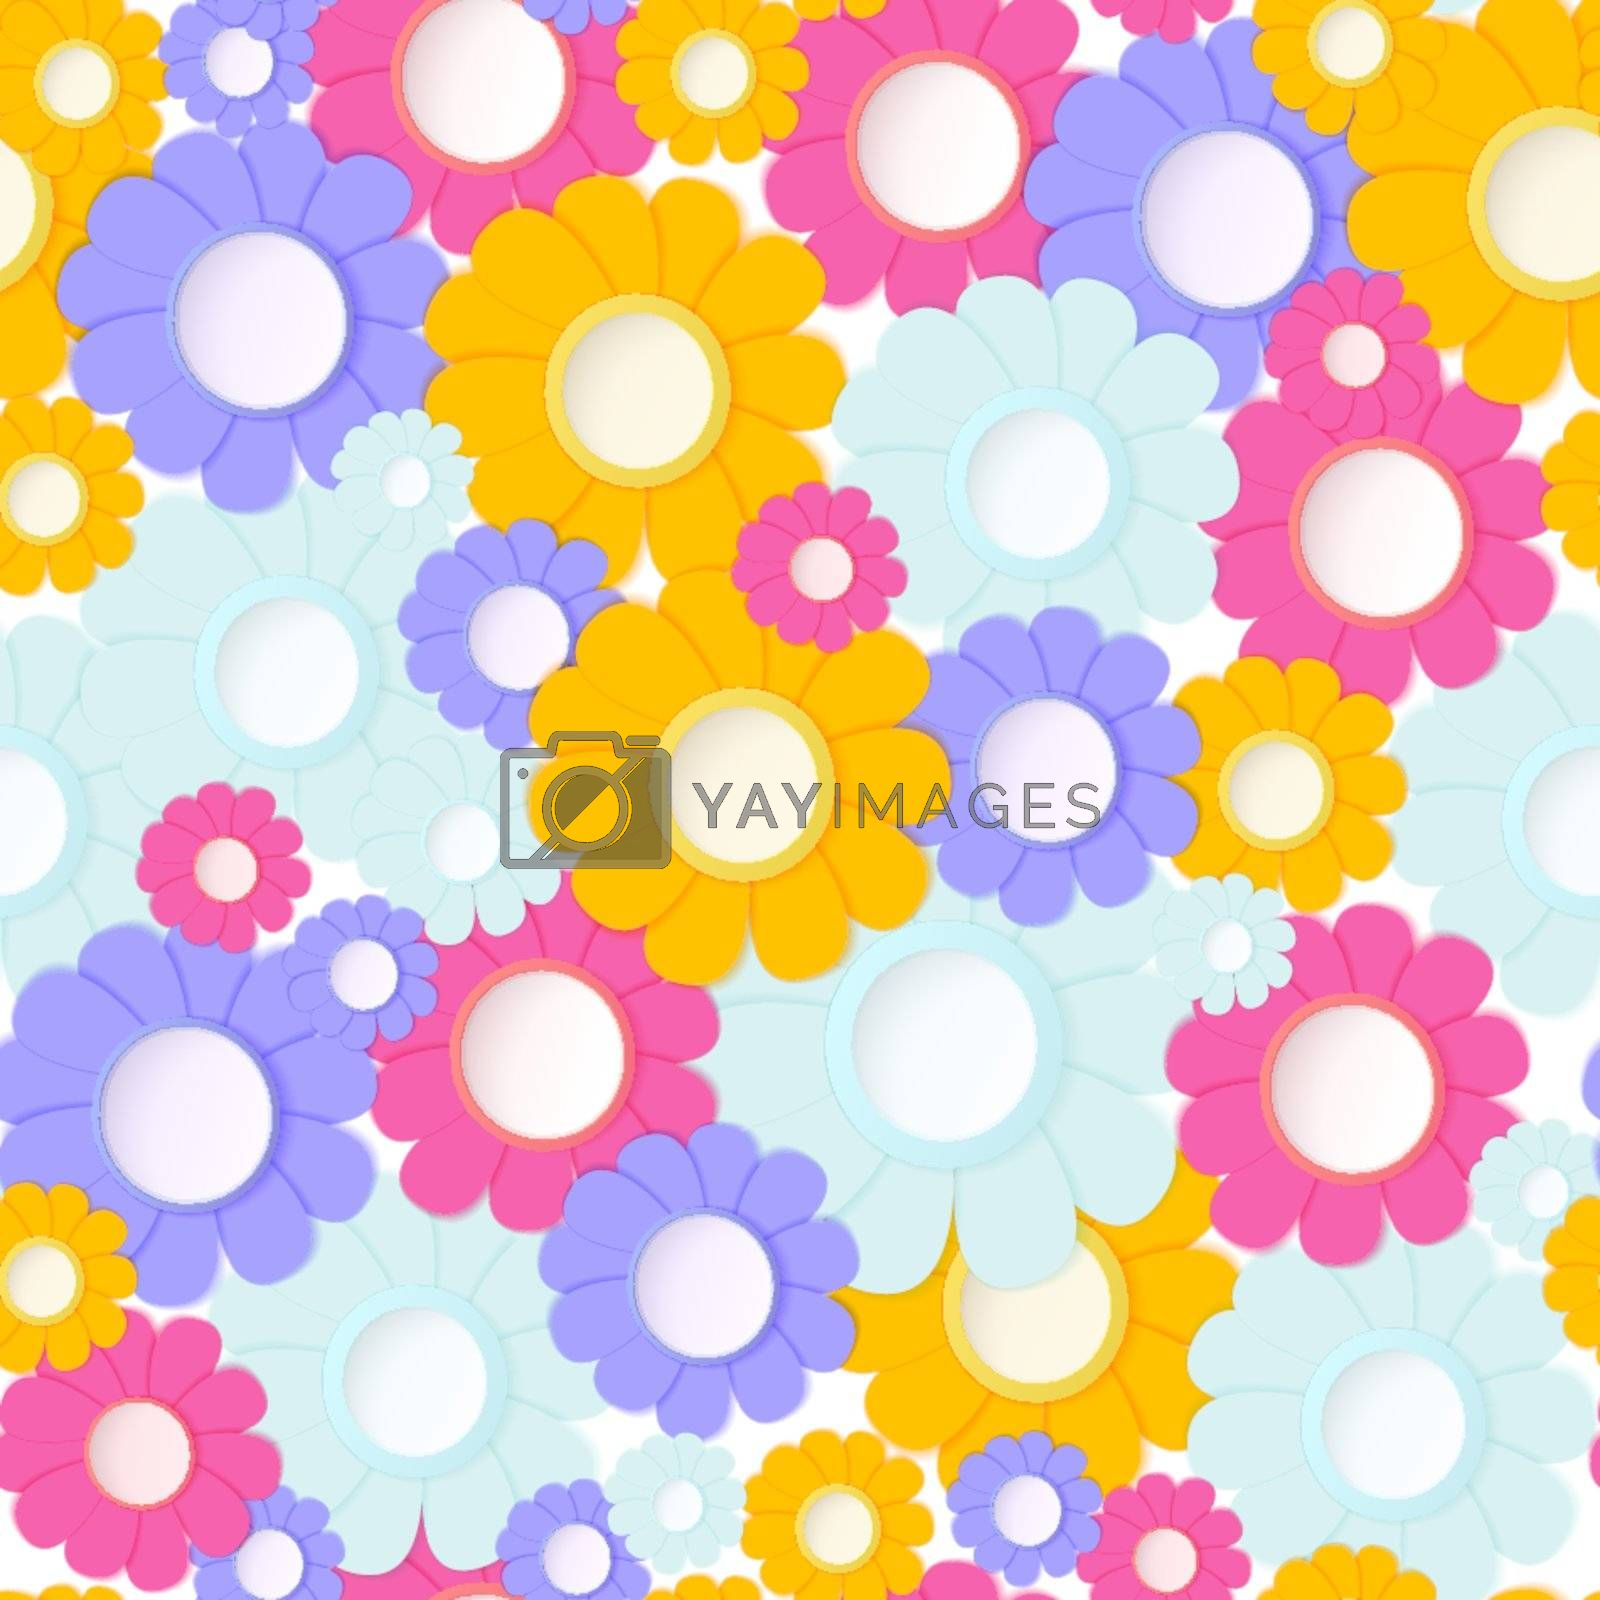 Vector illustration of paper crafted flowers seamless backgrounds